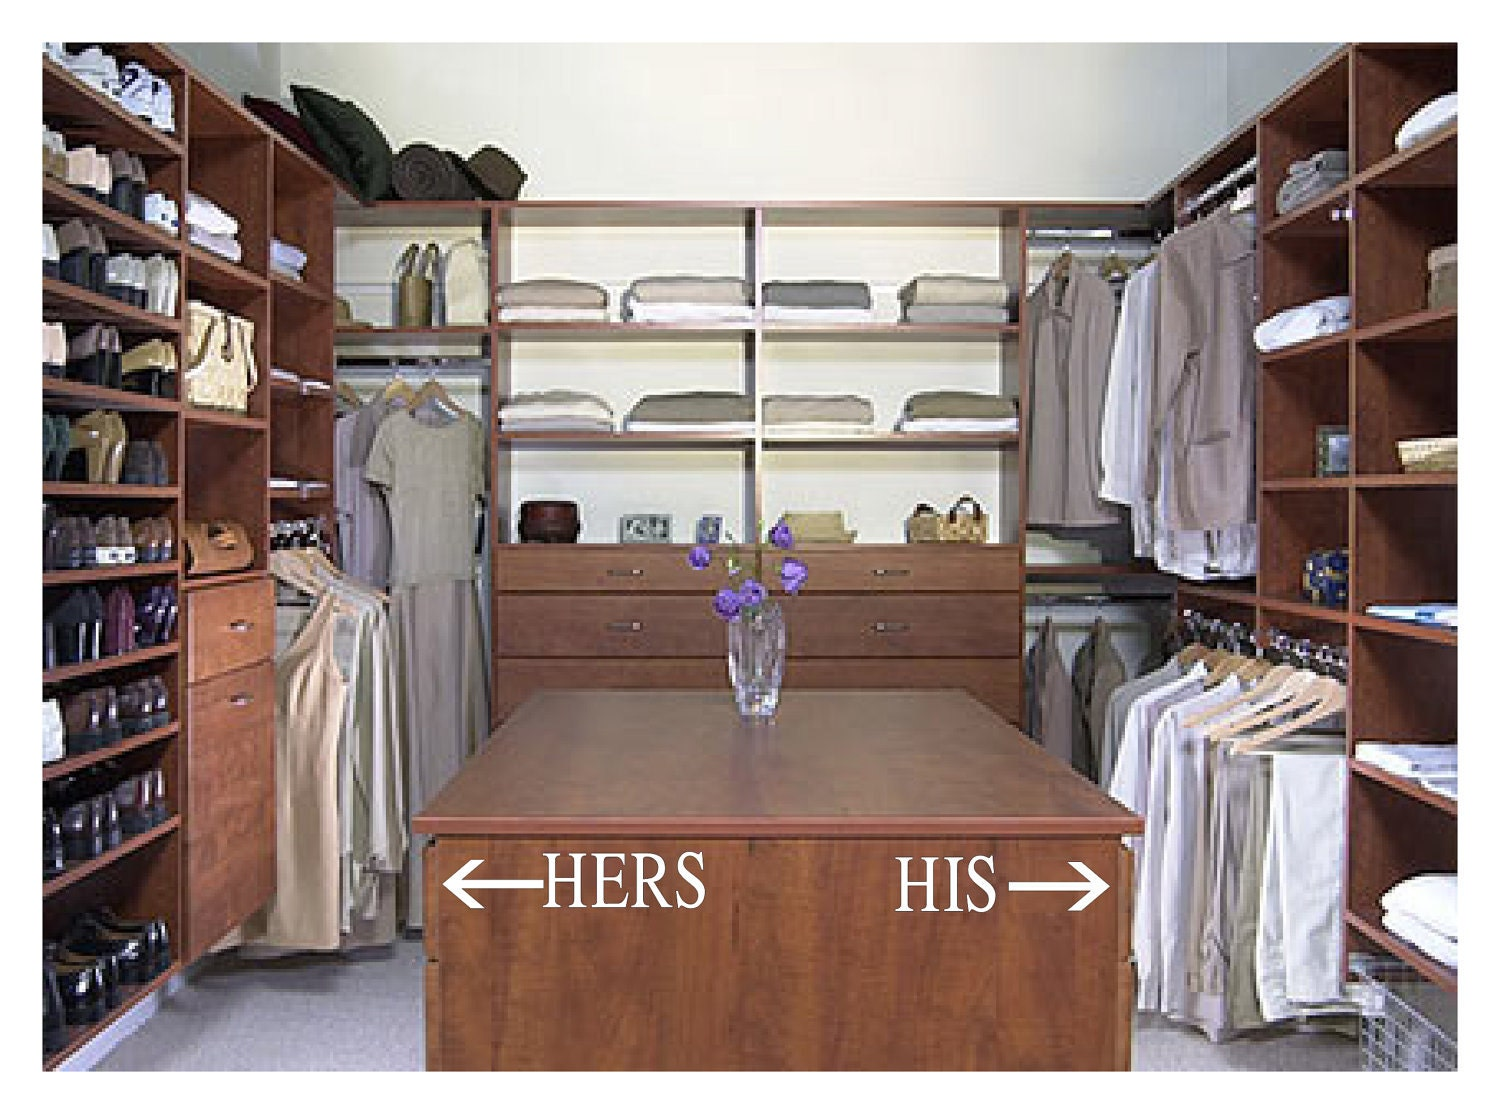 The big chore list hello life for His and hers wardrobe